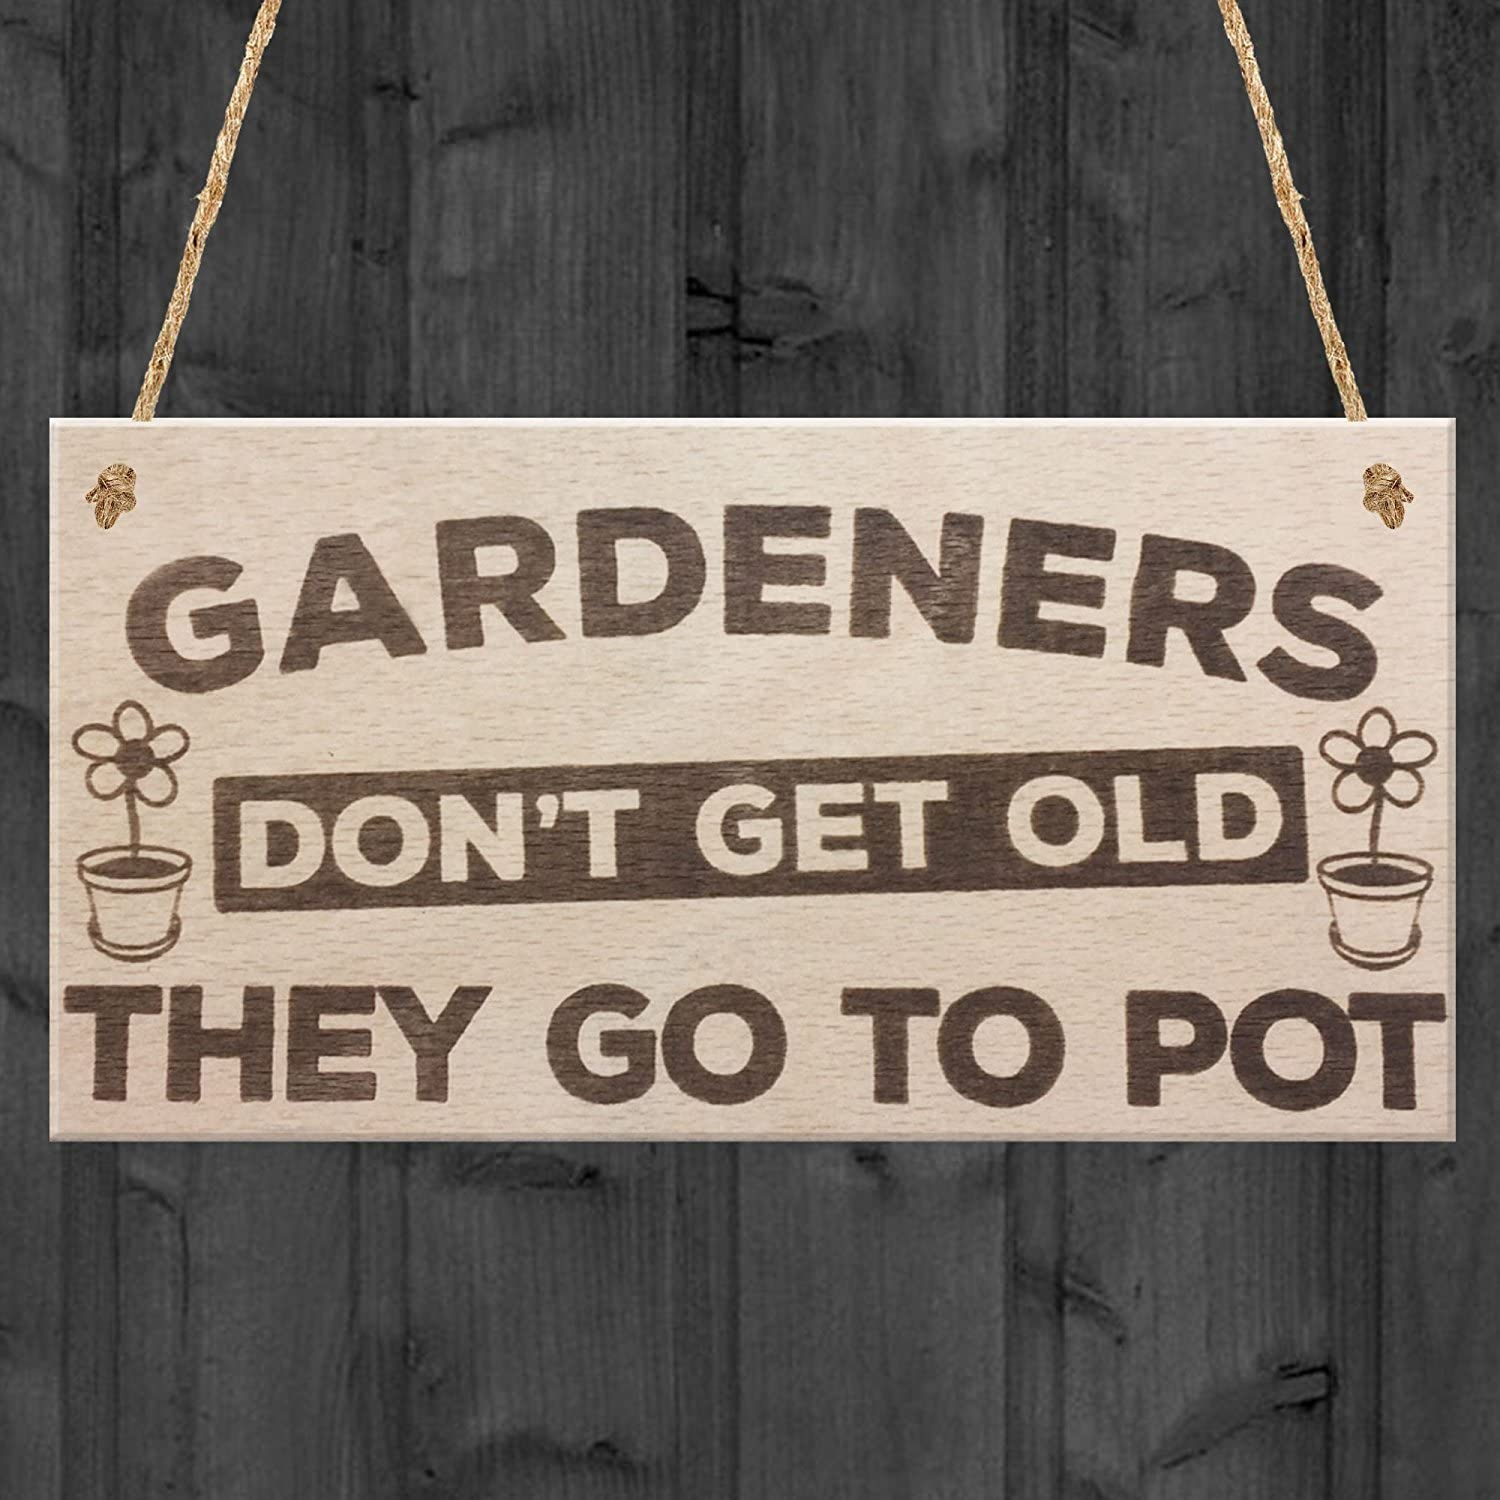 Gardeners Don't Get Old They Go To Pot Wooden Hanging Garden Plaque Shabby Chic Sign